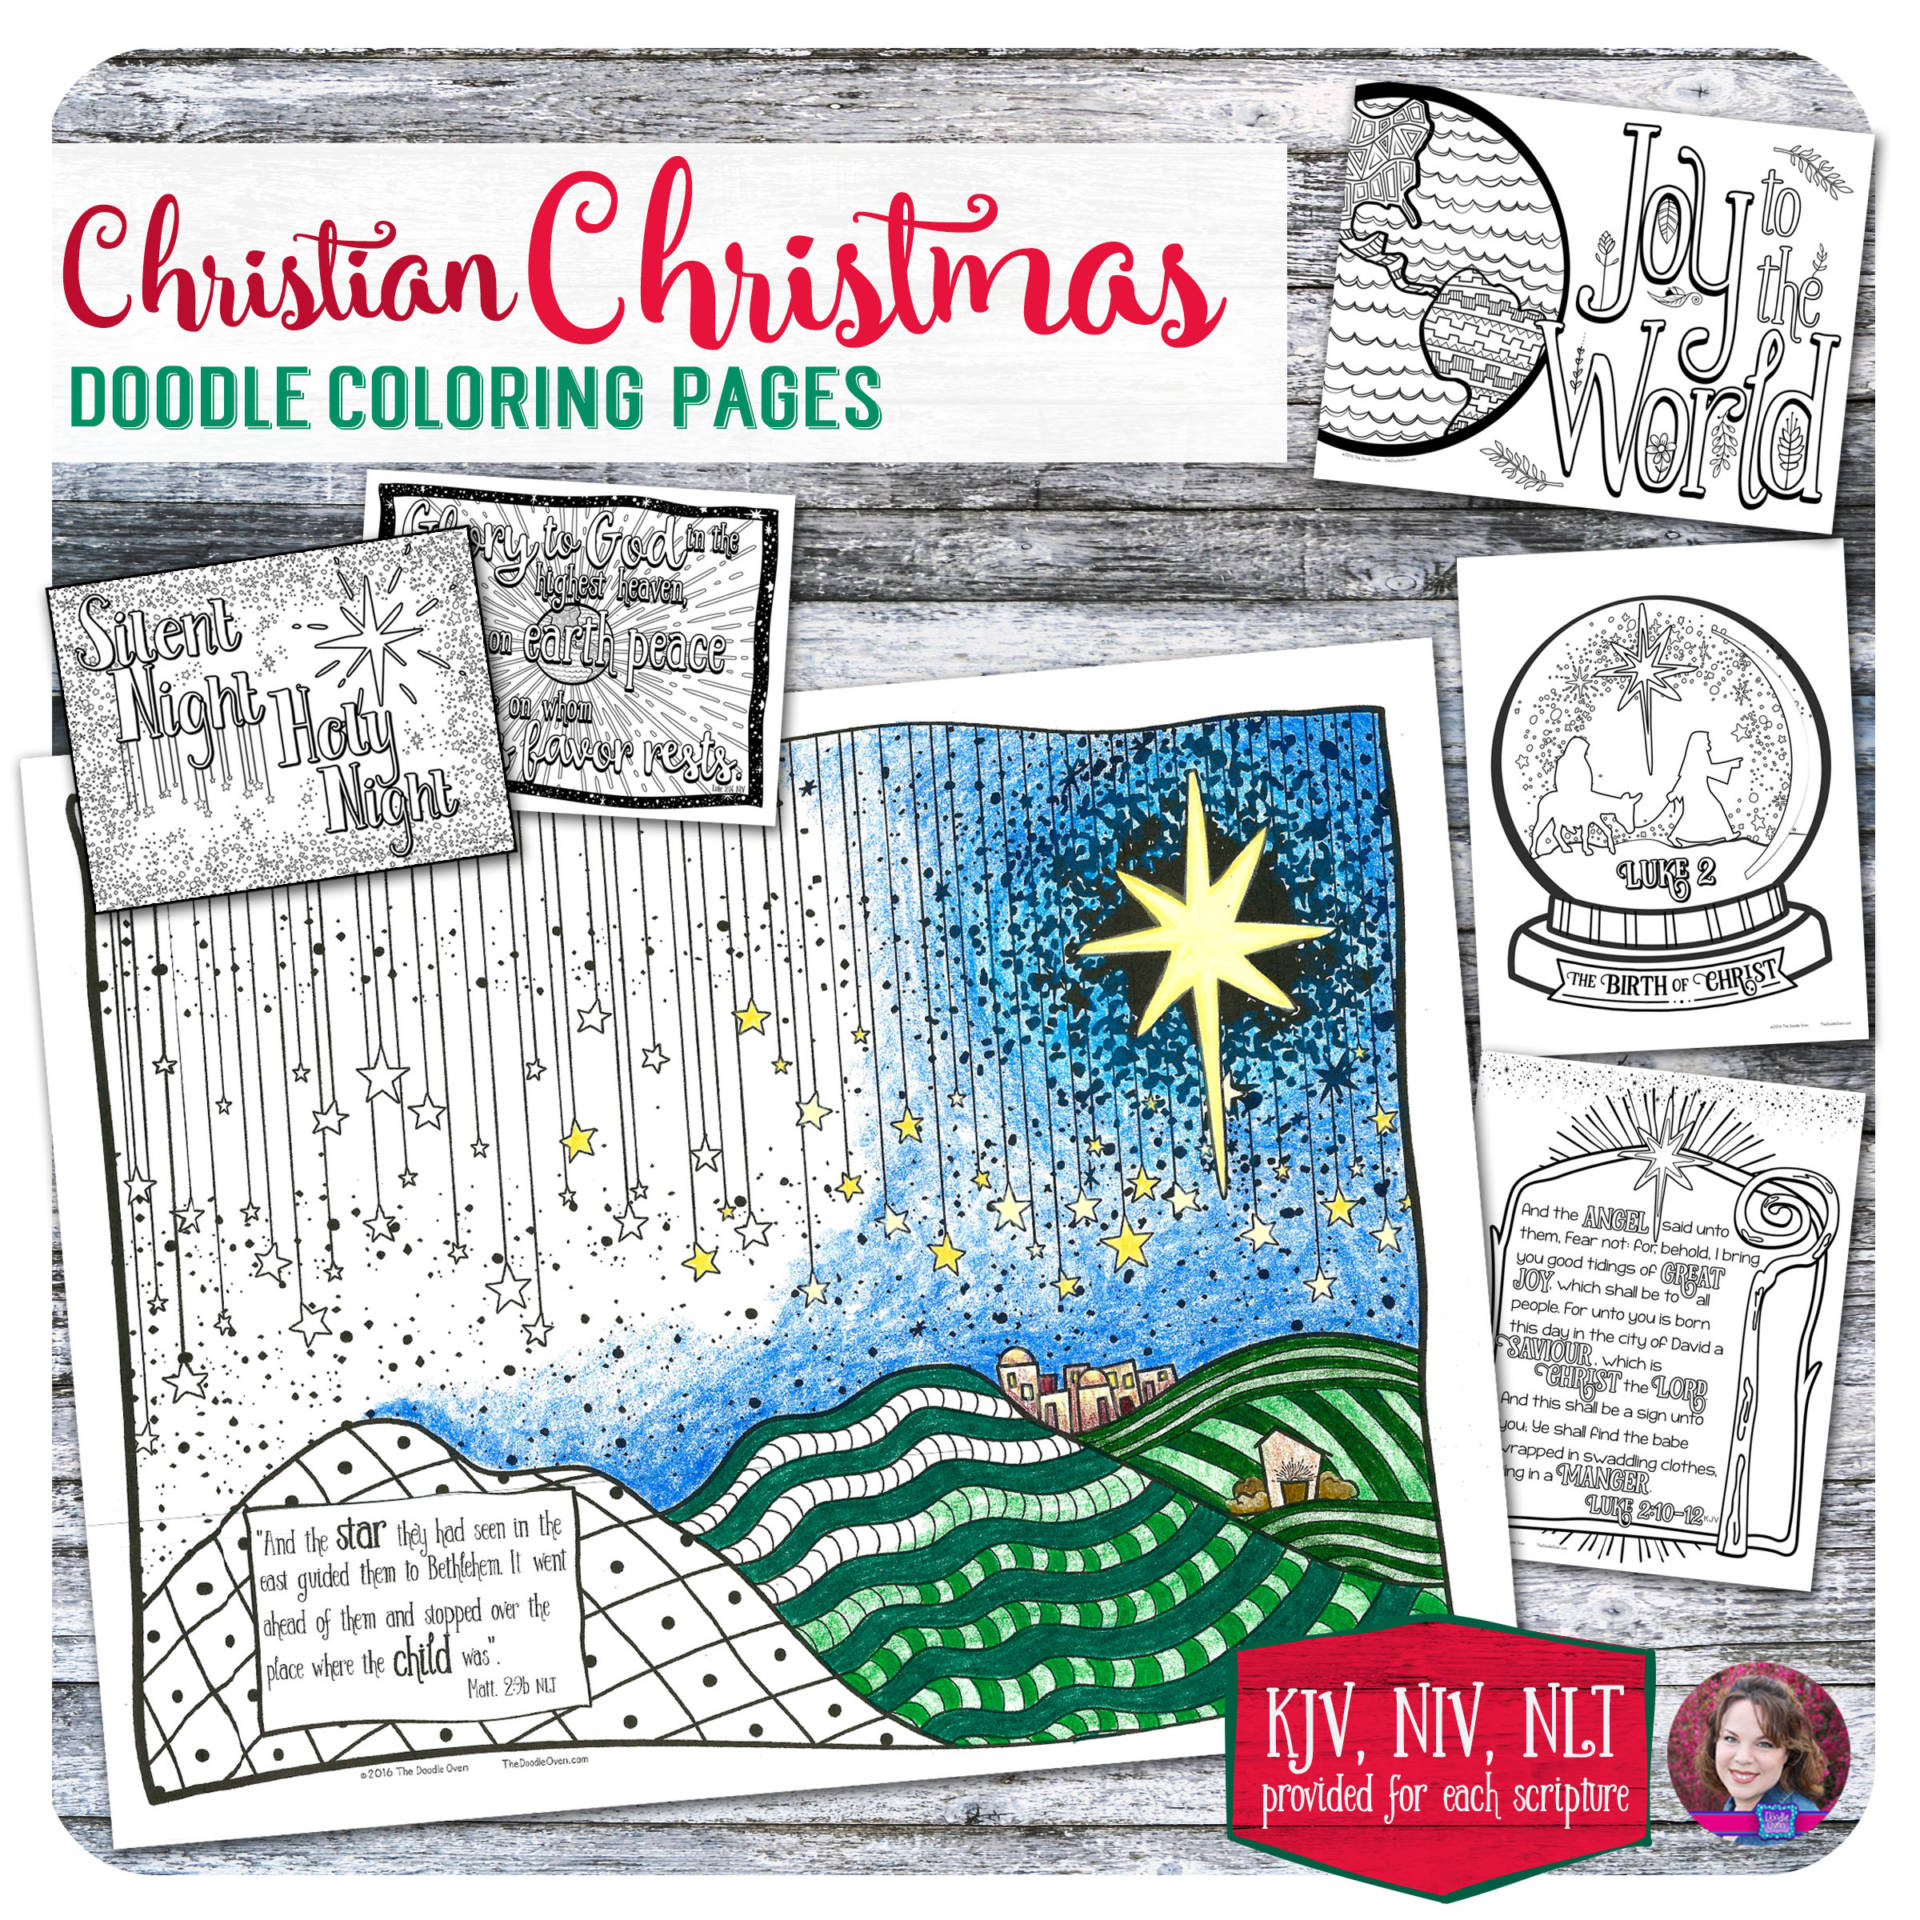 Christmas Coloring Designs With Christian Doodle Pages 6 Heidi Babin